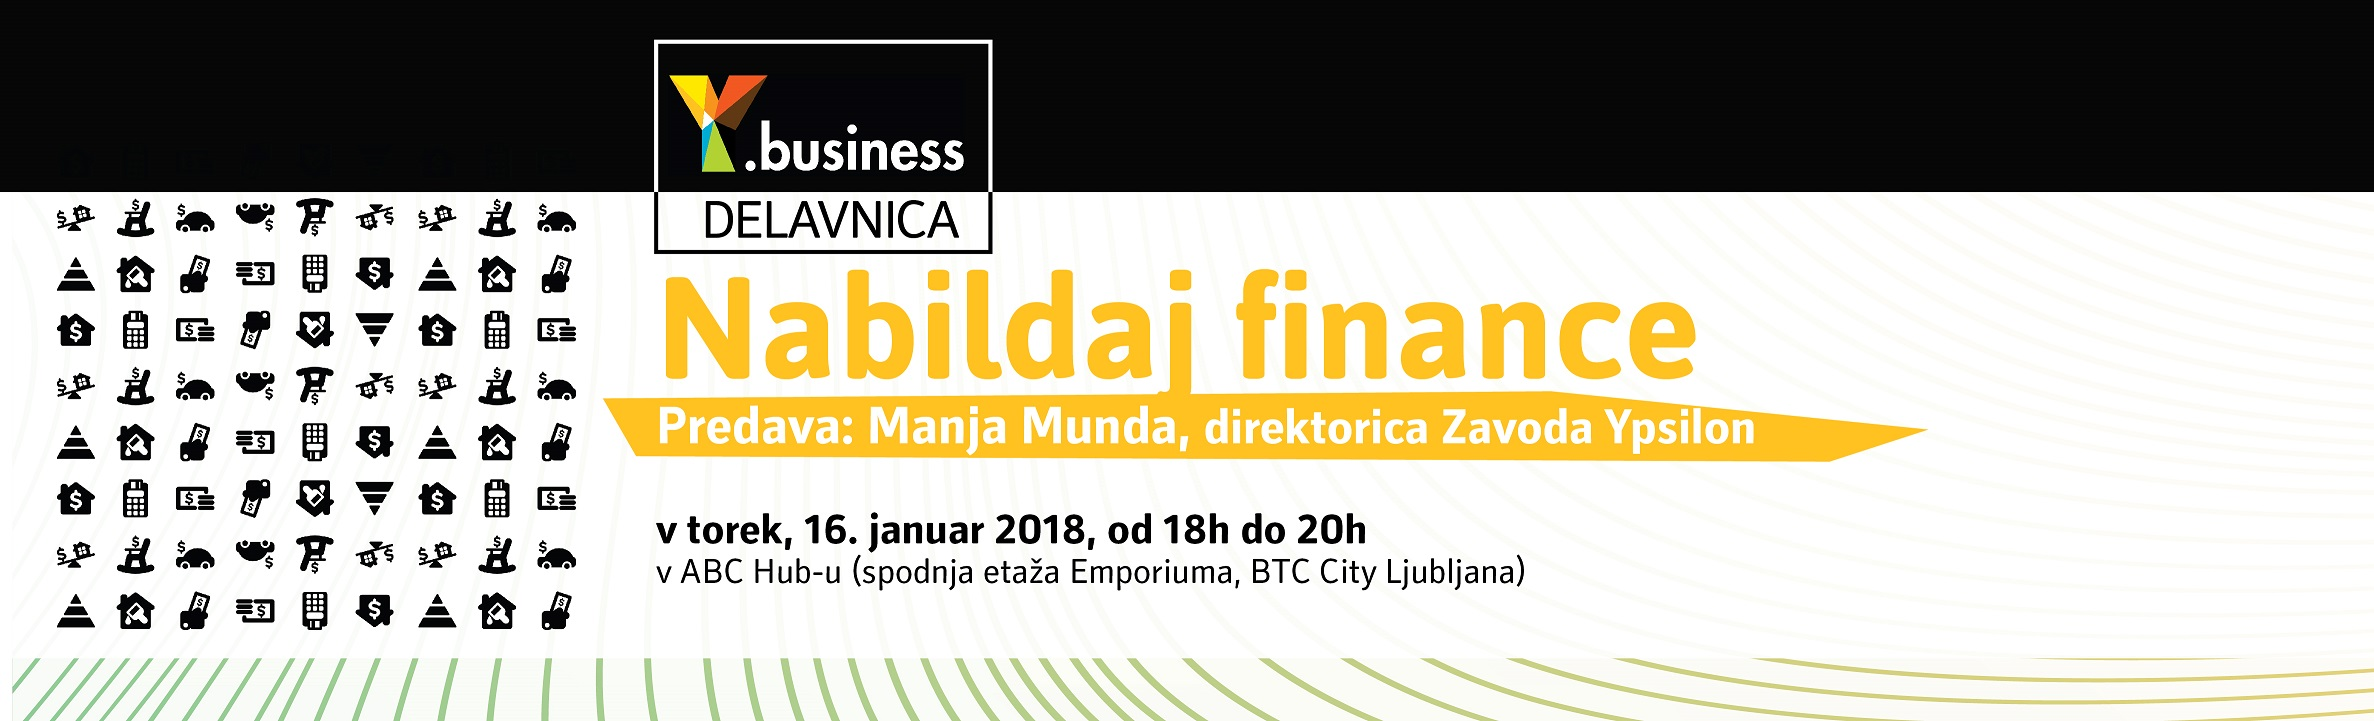 Ybusiness Nabildaj Finance Januar 2018 small